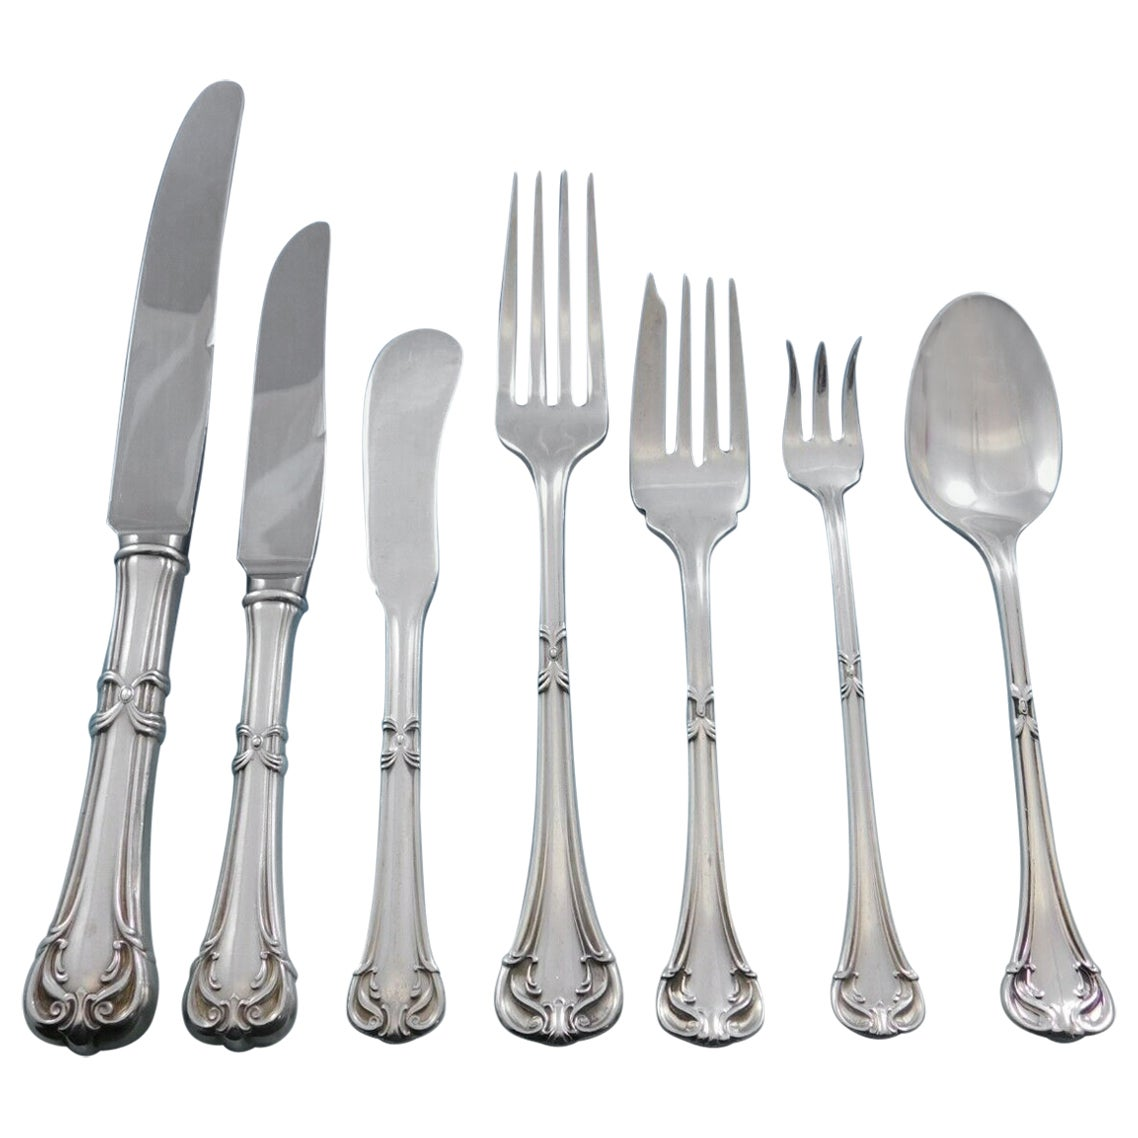 Nupical by Pesa Mexican Sterling Silver Flatware Set for 8 Service 56 Pieces